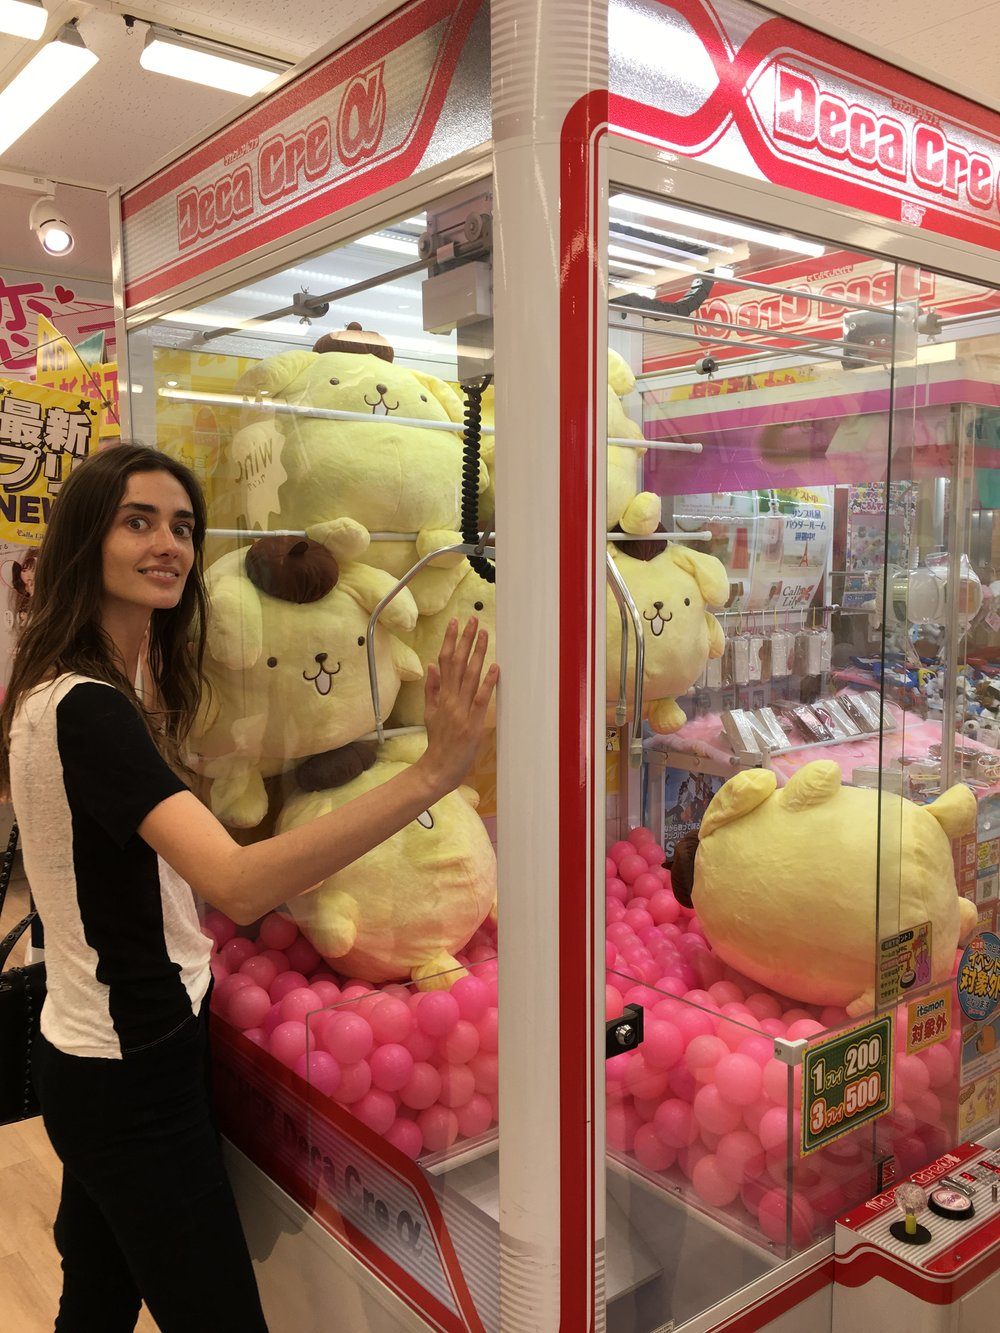 Fishing for Rilakkuma's. We spent six dollars on failed attempts.